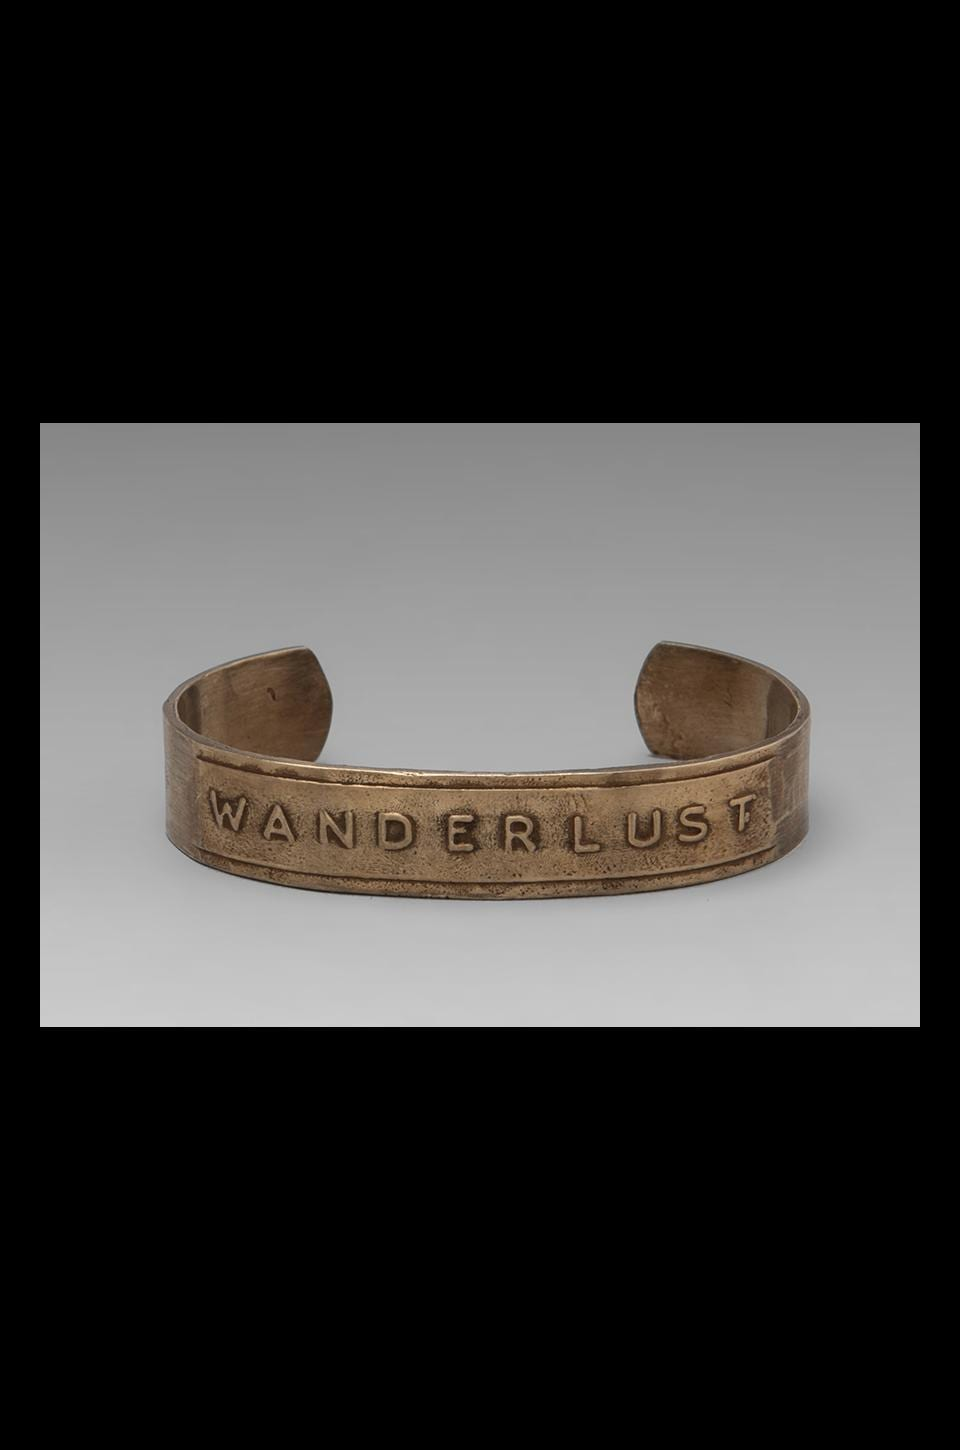 Bing Bang Wanderlust Cuff in Brass